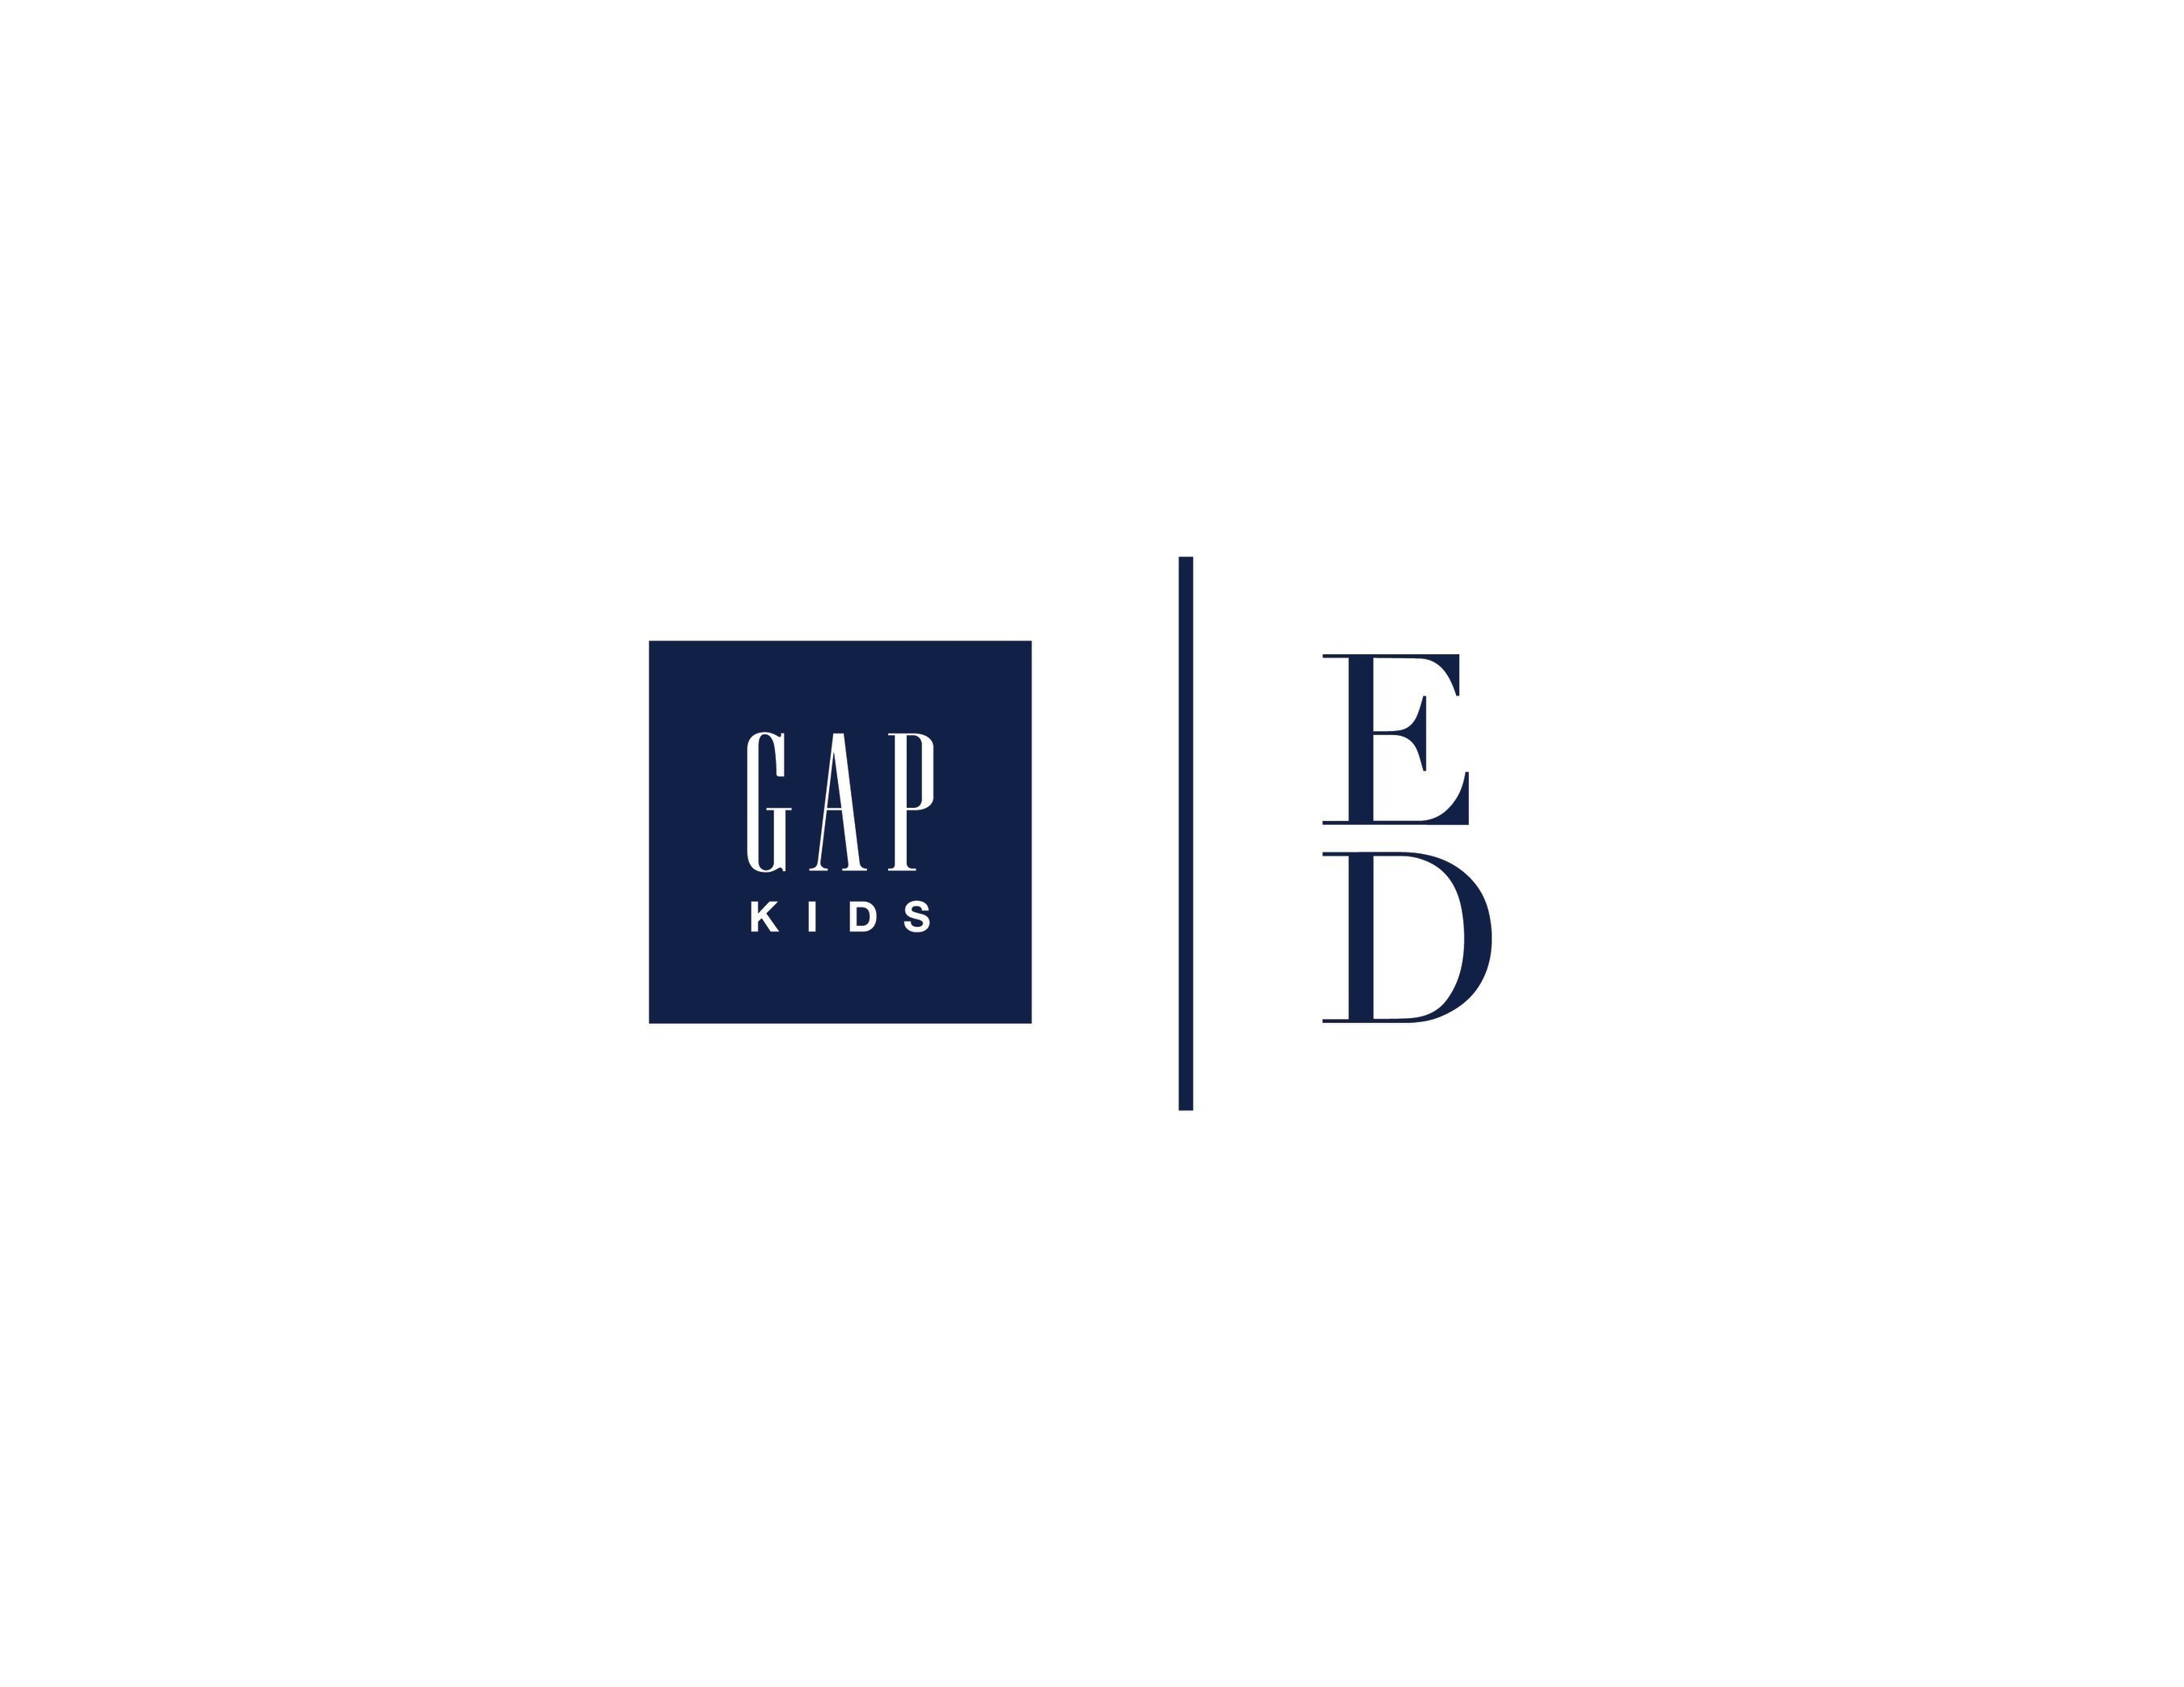 Gap partners with America's ambassador of individuality, Ellen DeGeneres, and her new lifestyle brand, ED, ...